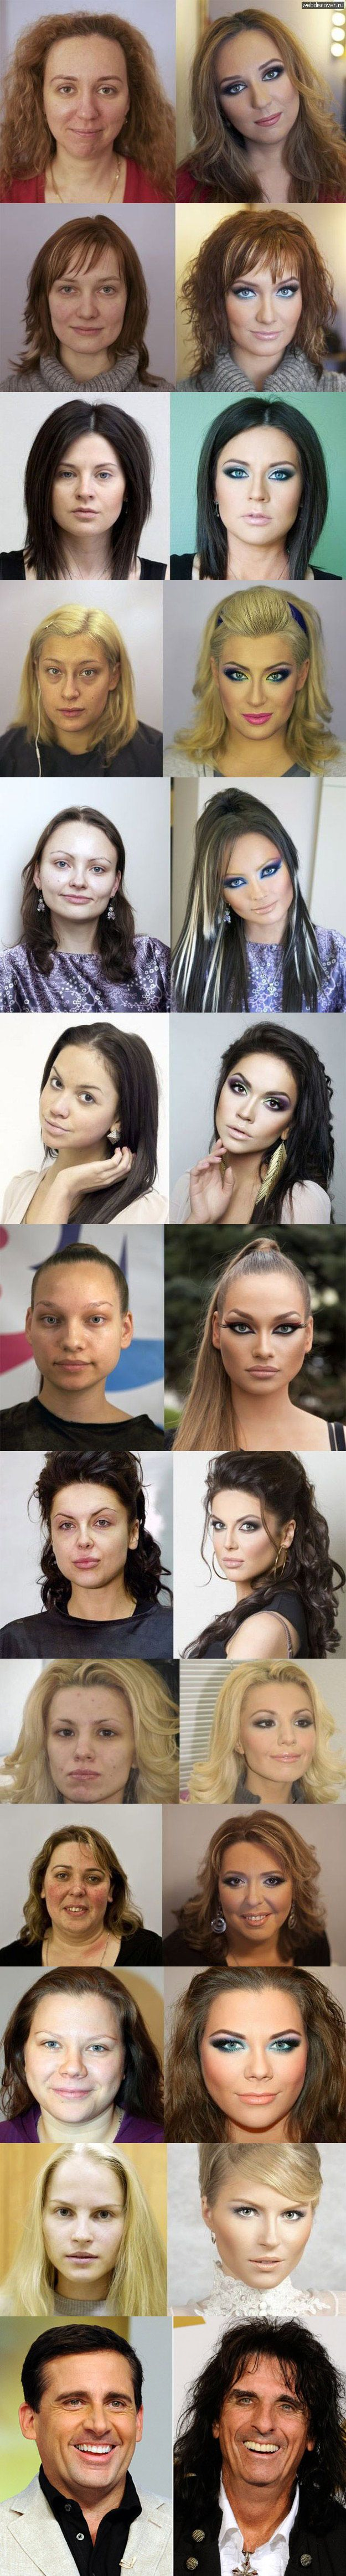 LOL THE LAST ONE XD: Make Up, Power Of Makeup, Funny Pictures, Funny Stuff, Funnies, Beauty, Hair